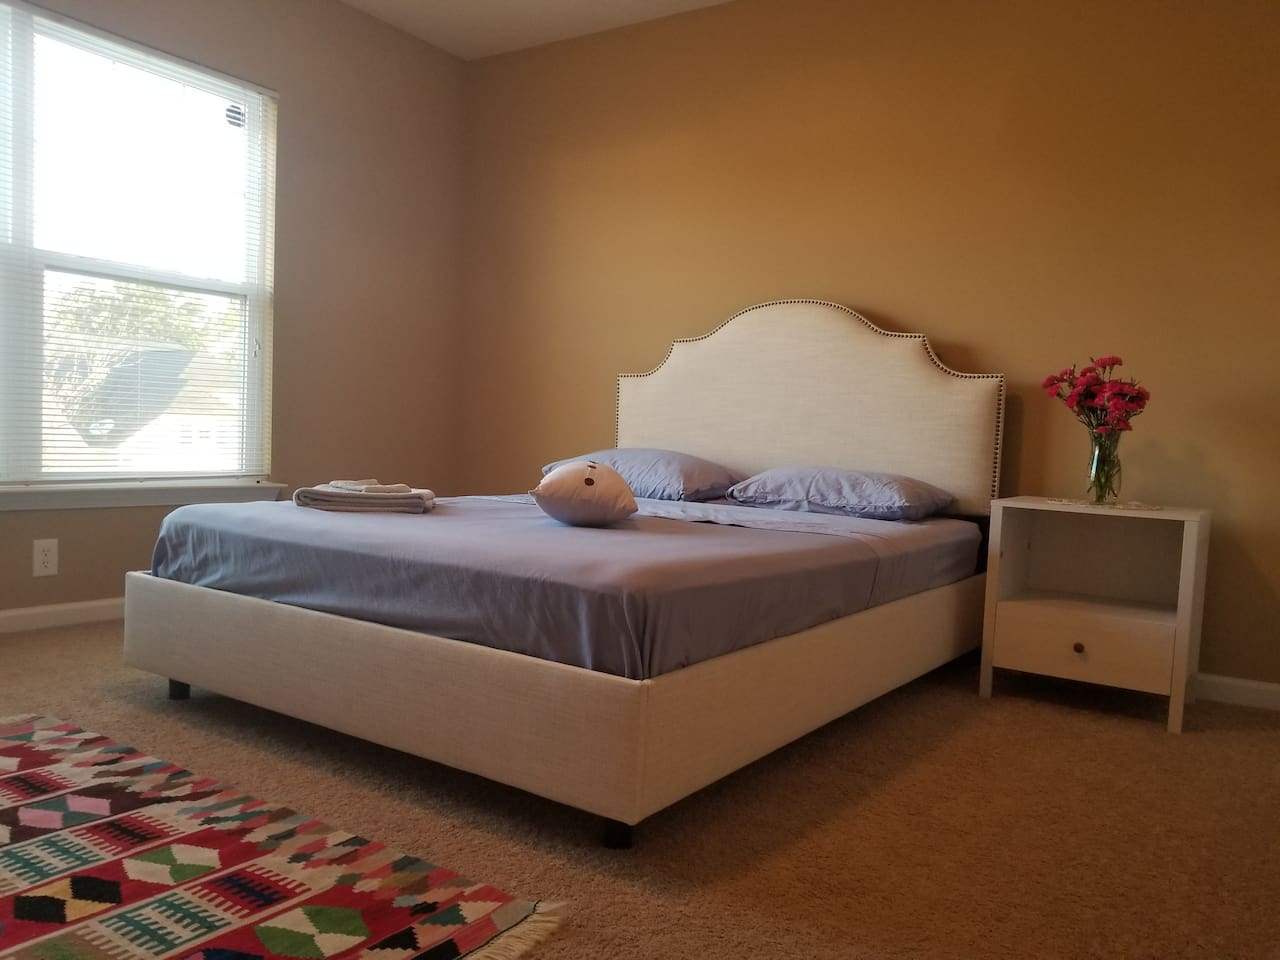 In a separate floor, great atmosphere, comfortable, very clean with own AC thermostat, along with big private bathroom.